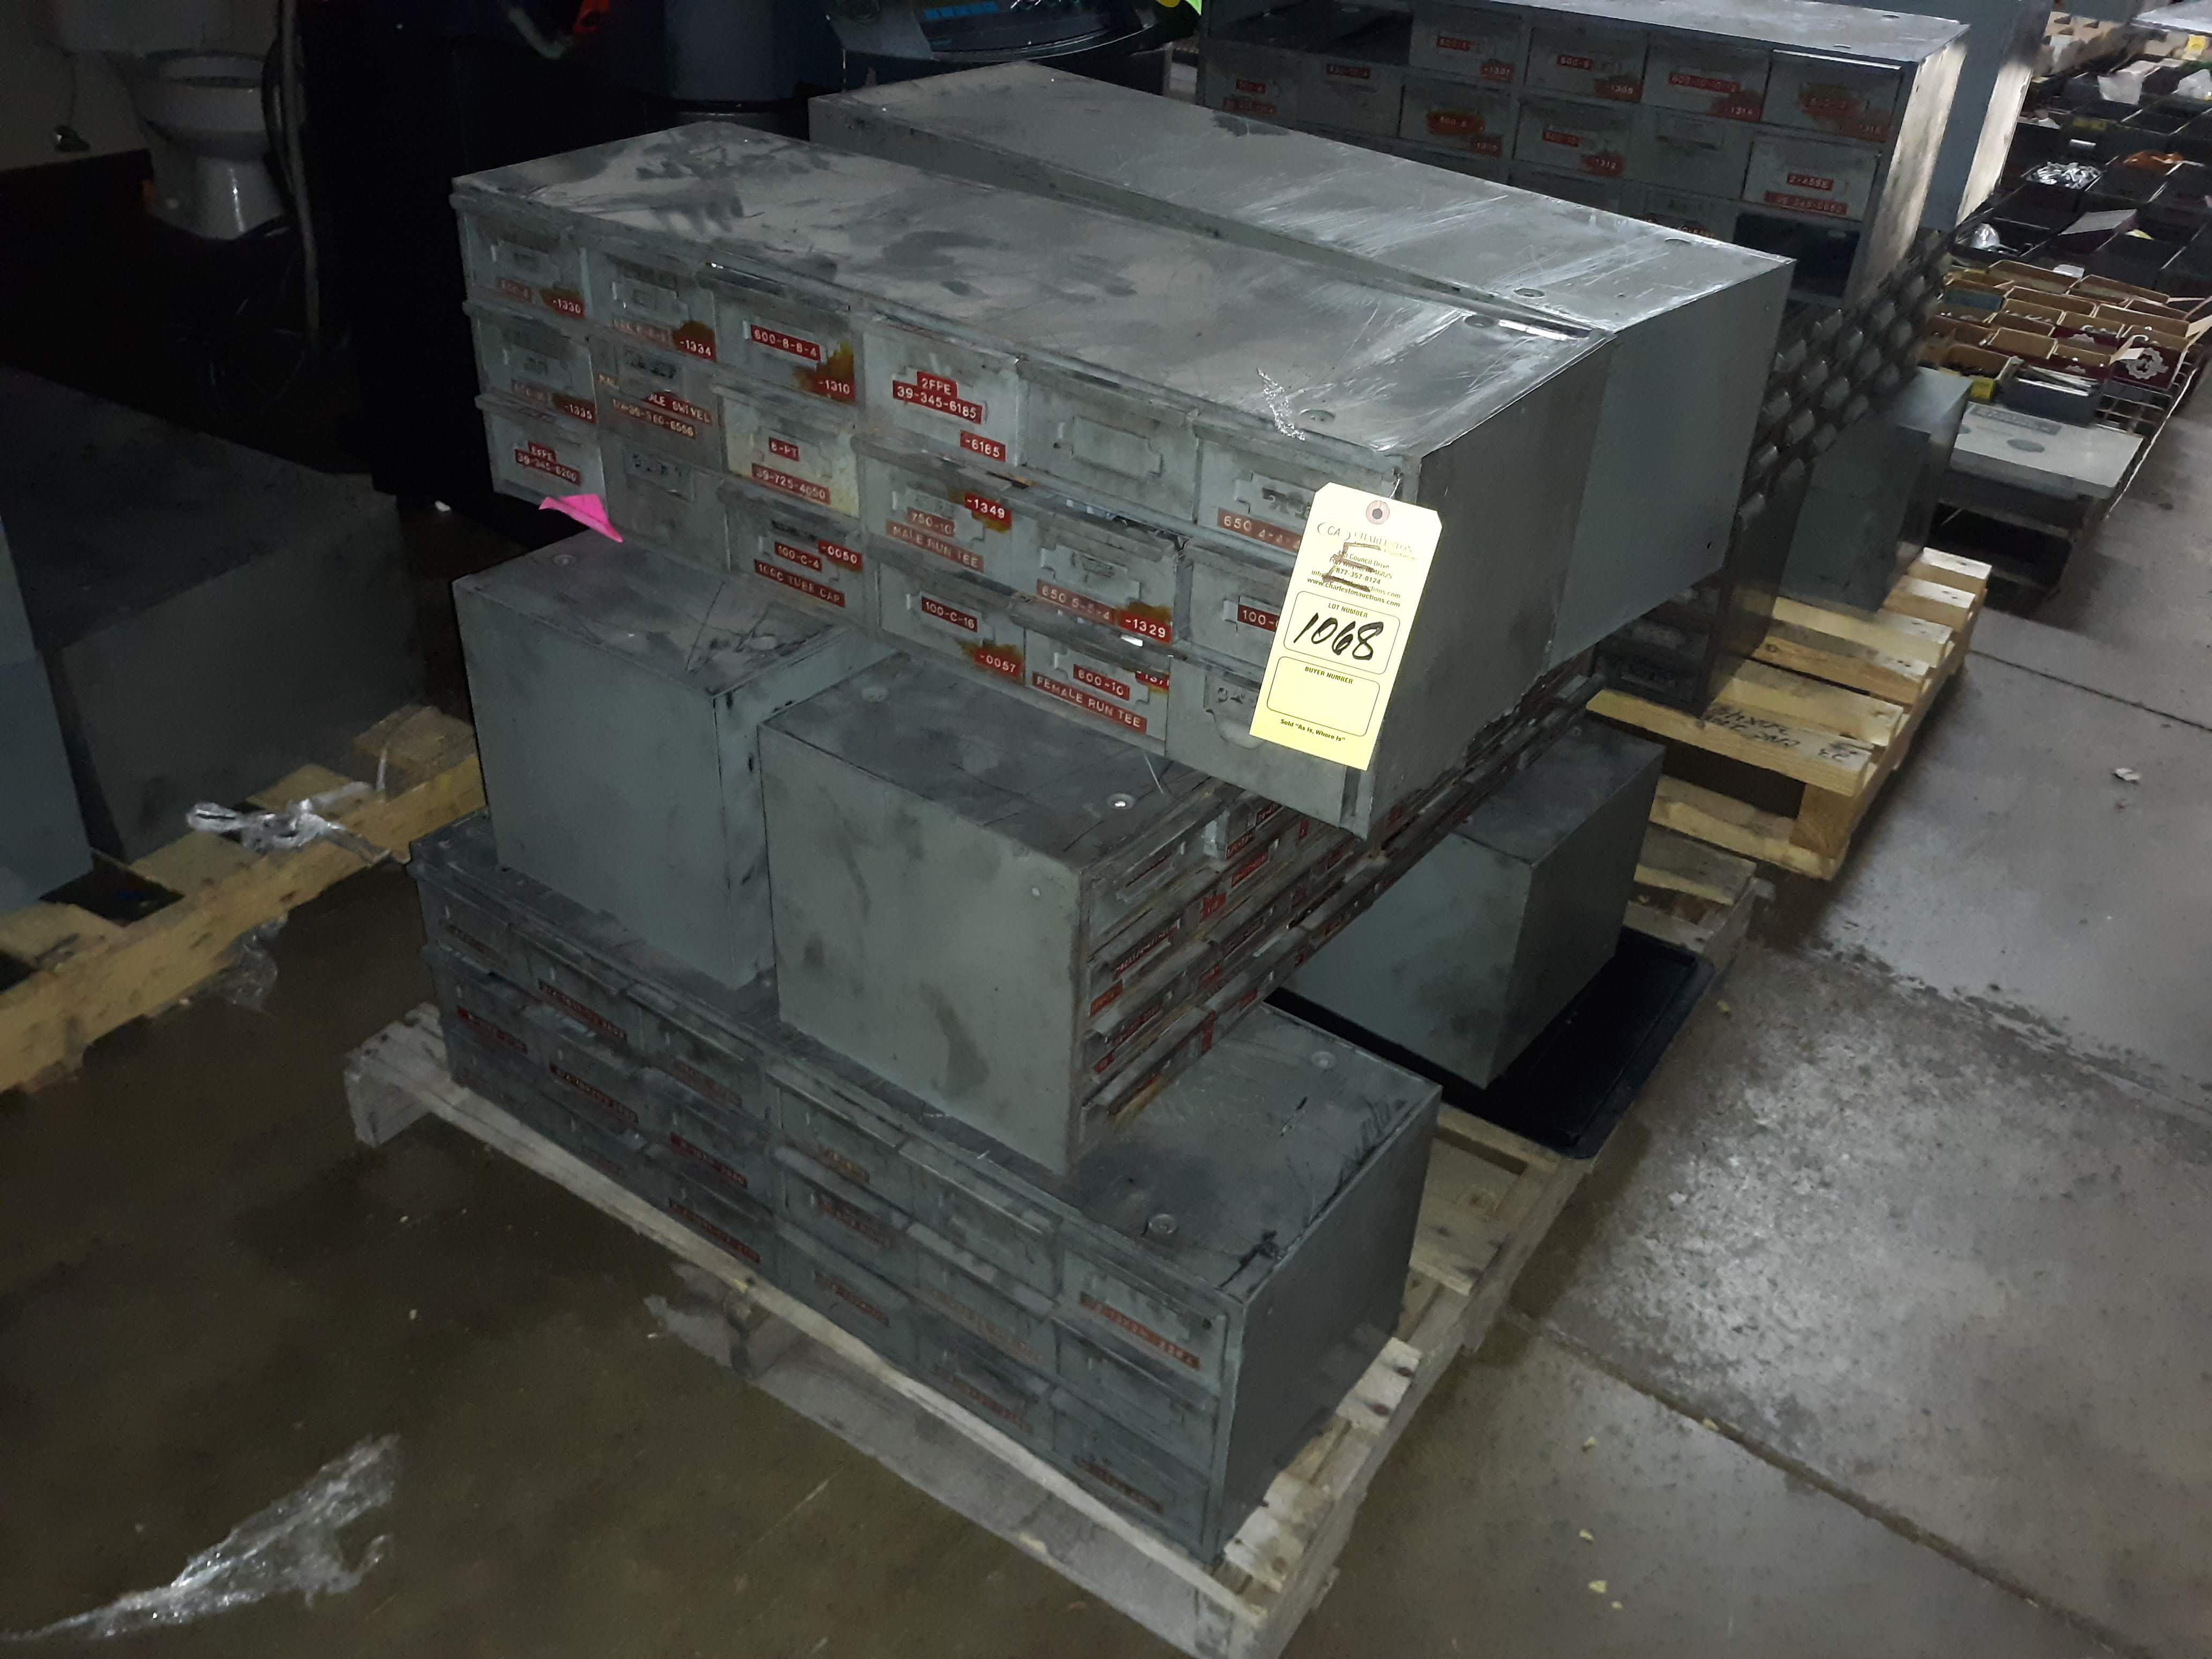 Lot 1068 - (6) SMALL PARTS BINS W/ VARIOUS SCREWS; BOLTS; NUTS; WASHERS & PINS (LOCATED AT: 432 COUNCIL